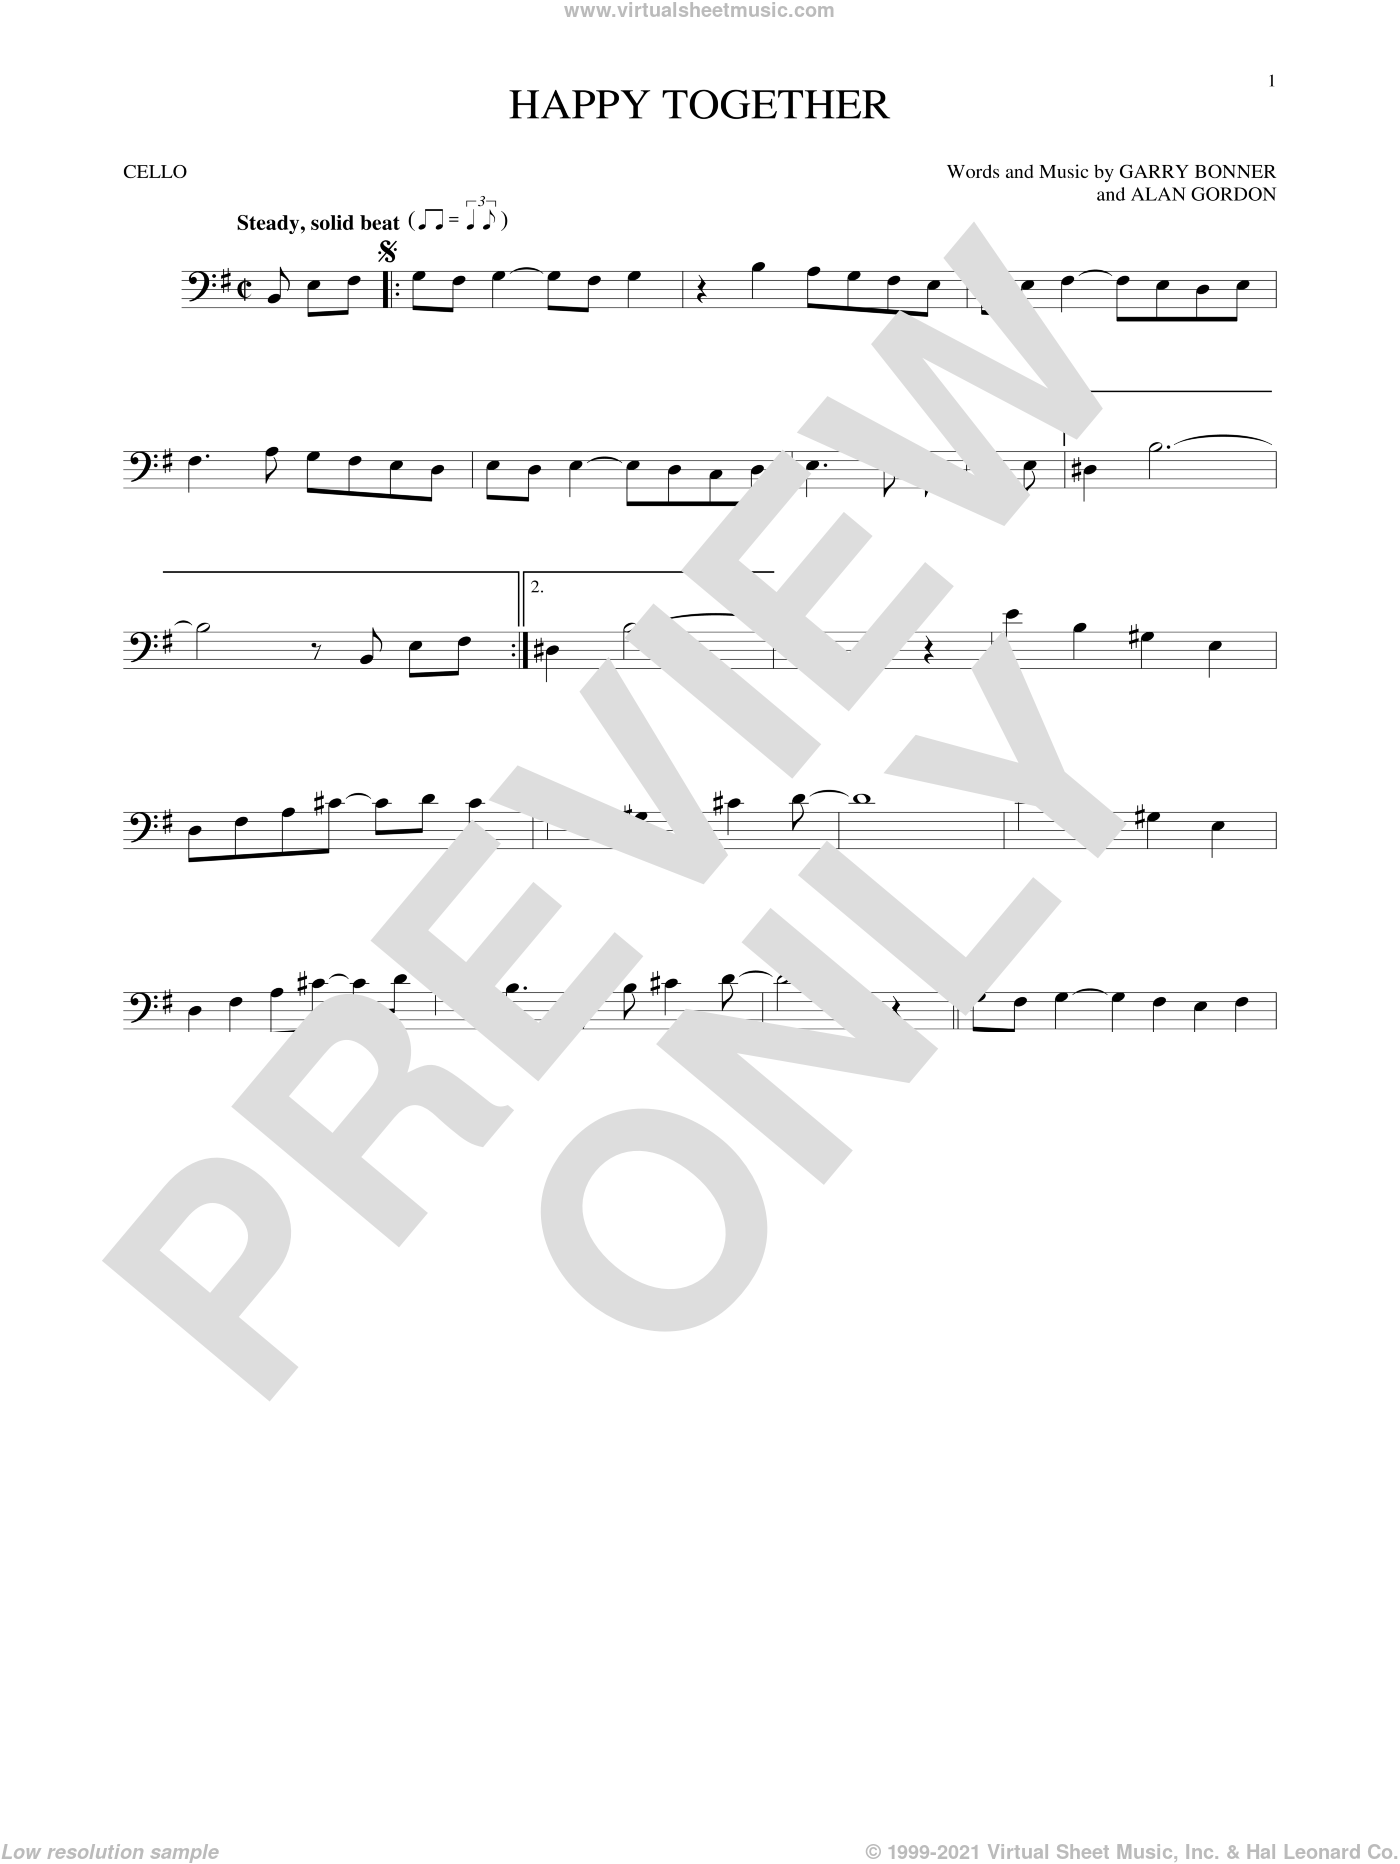 Happy Together sheet music for cello solo by The Turtles, Alan Gordon and Garry Bonner, intermediate skill level